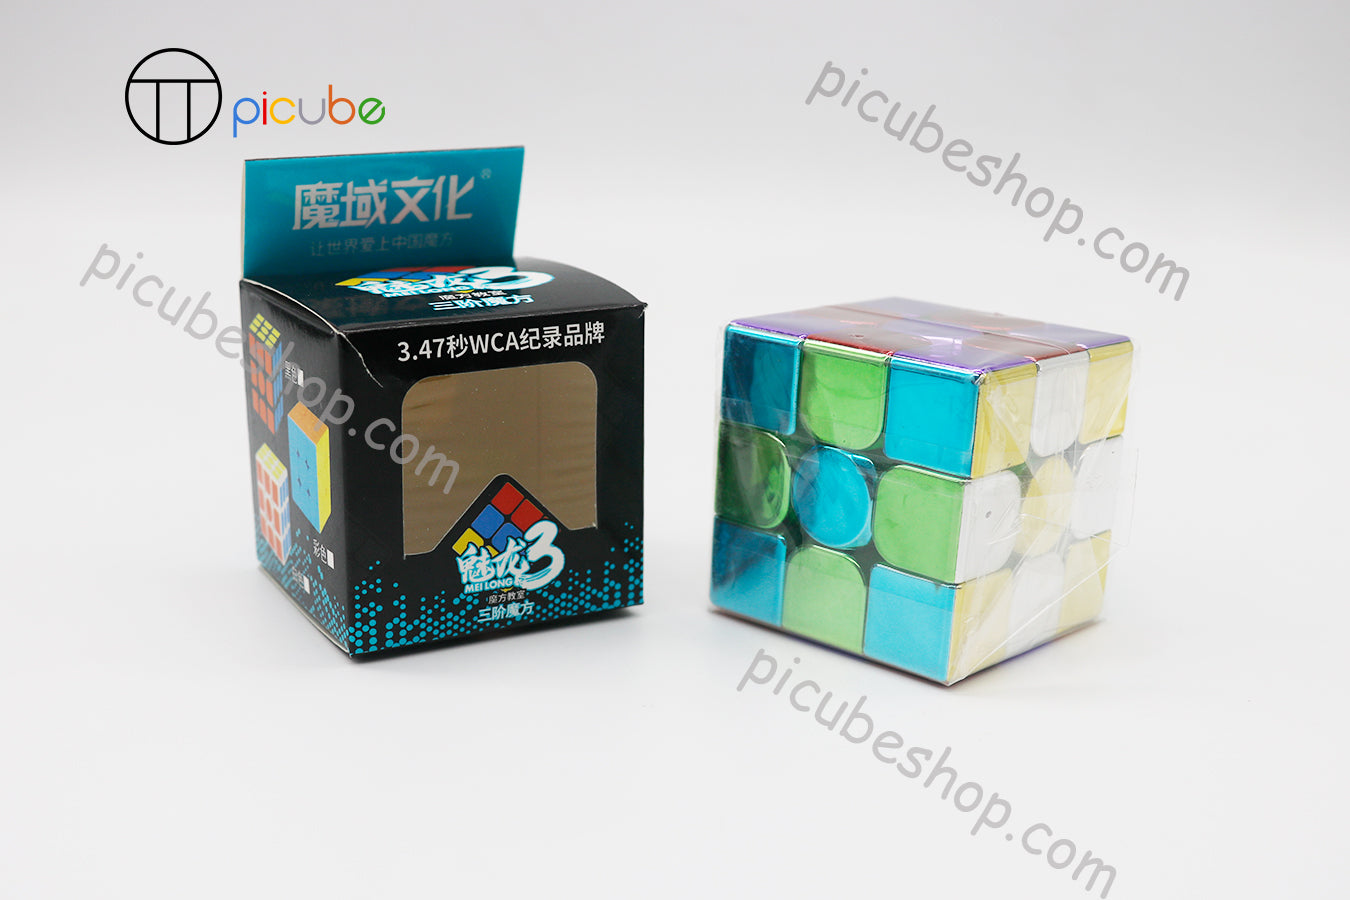 Picube Eclipse MeiLong 3x3 Metal